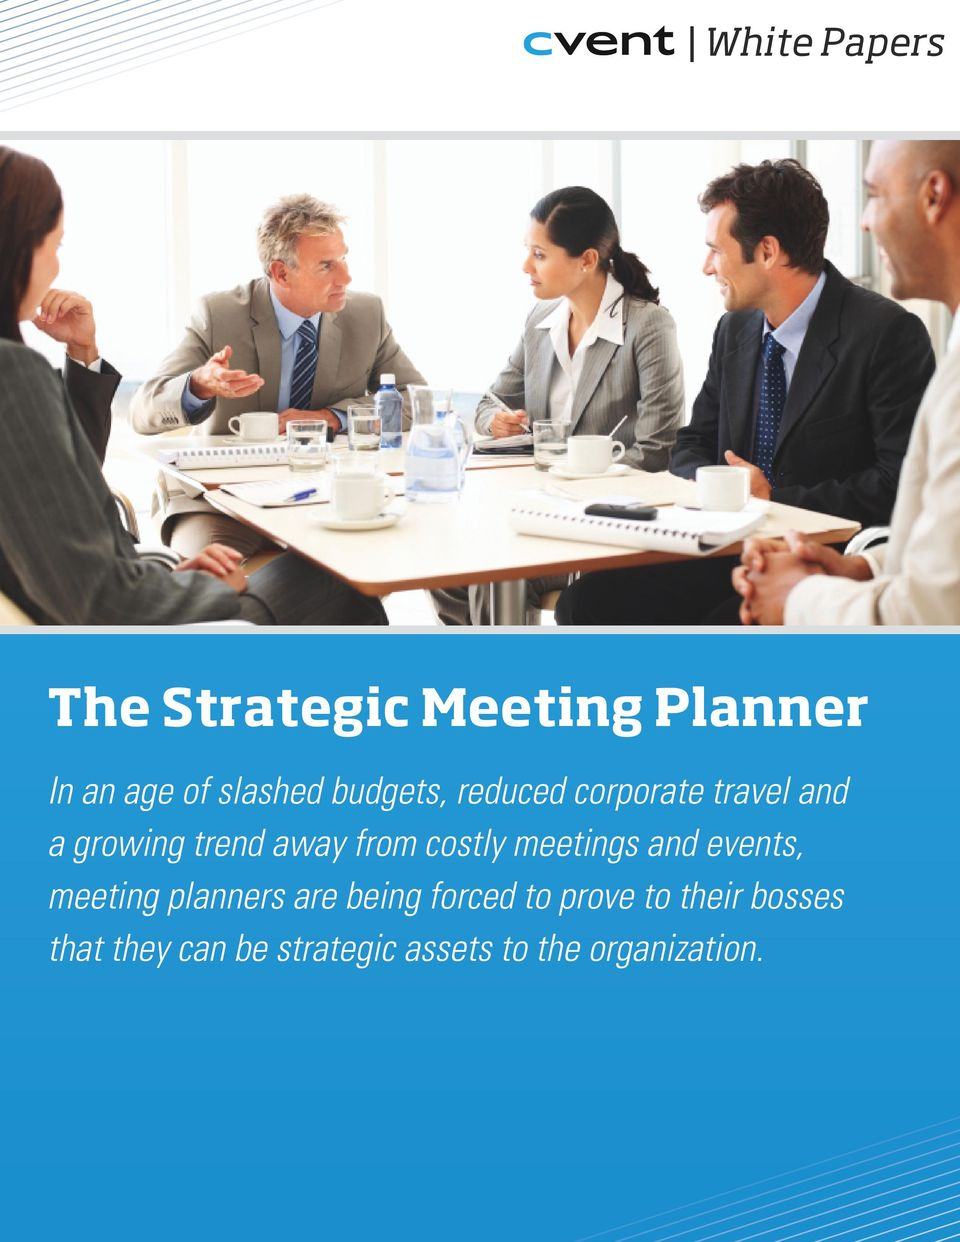 costly meetings and events, meeting planners are being forced to